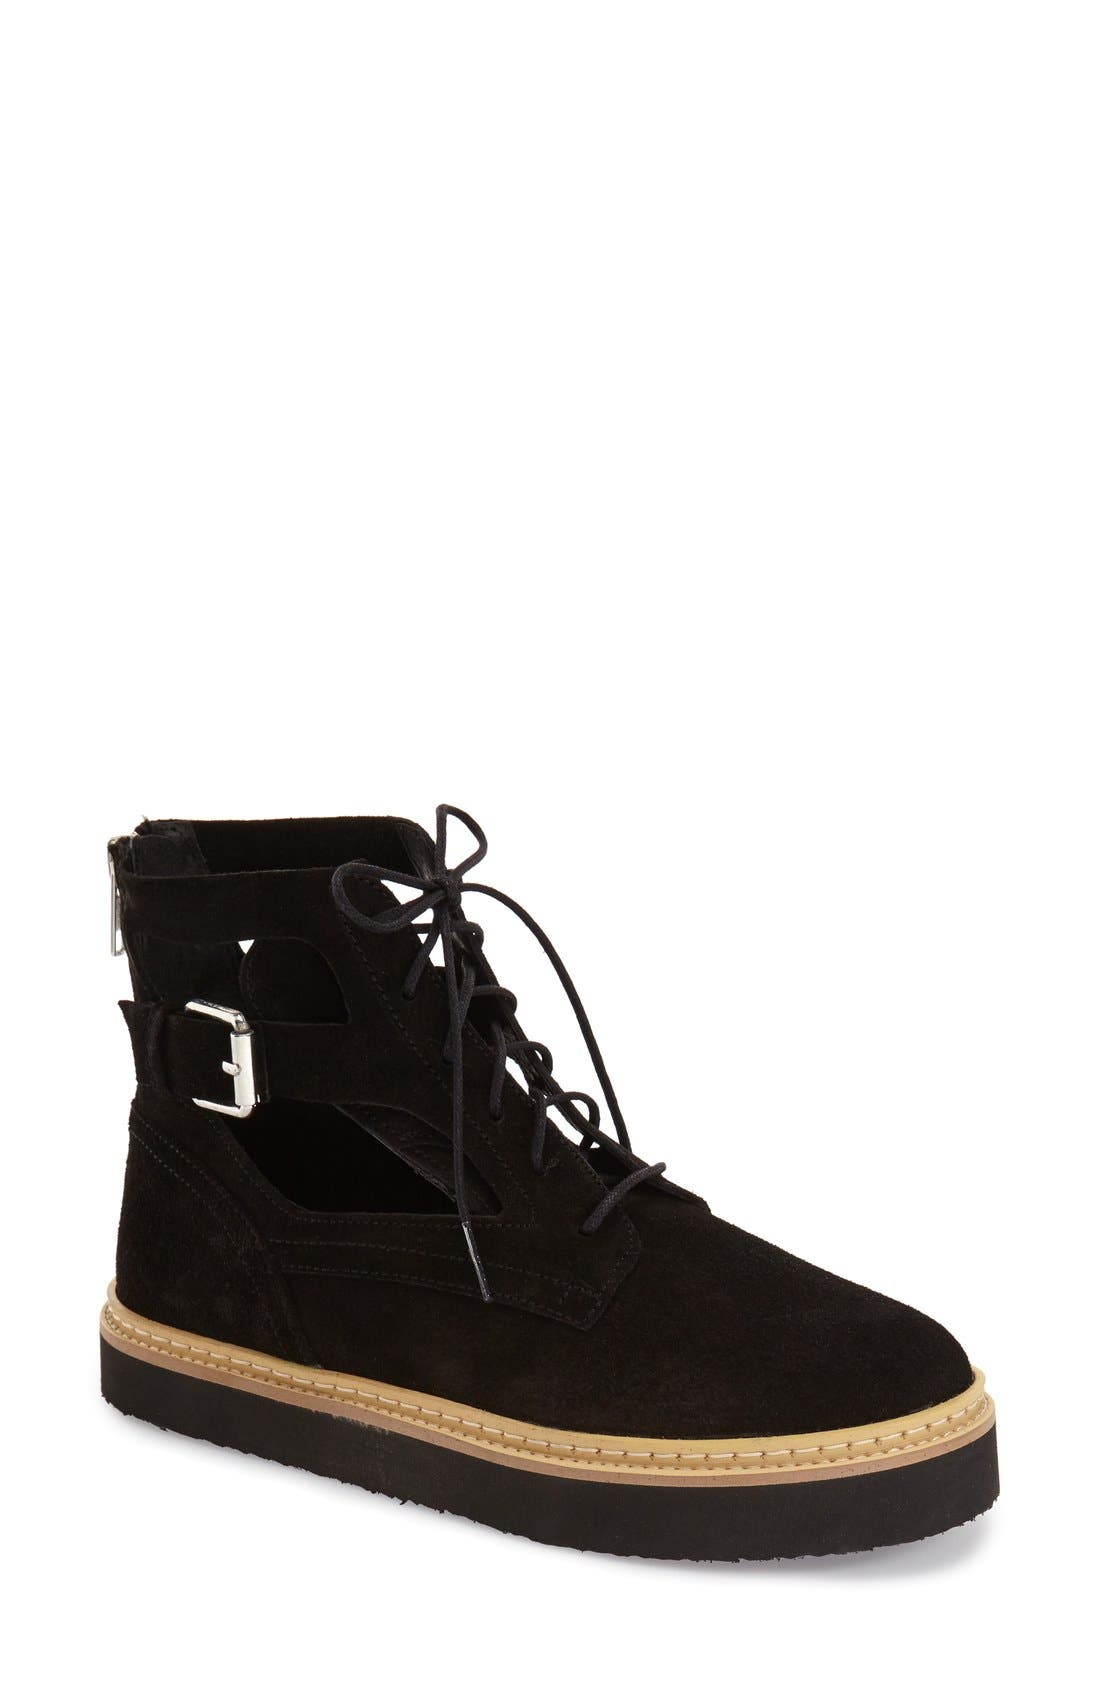 Main Image - Topshop 'Attack' Cutout Bootie (Women)